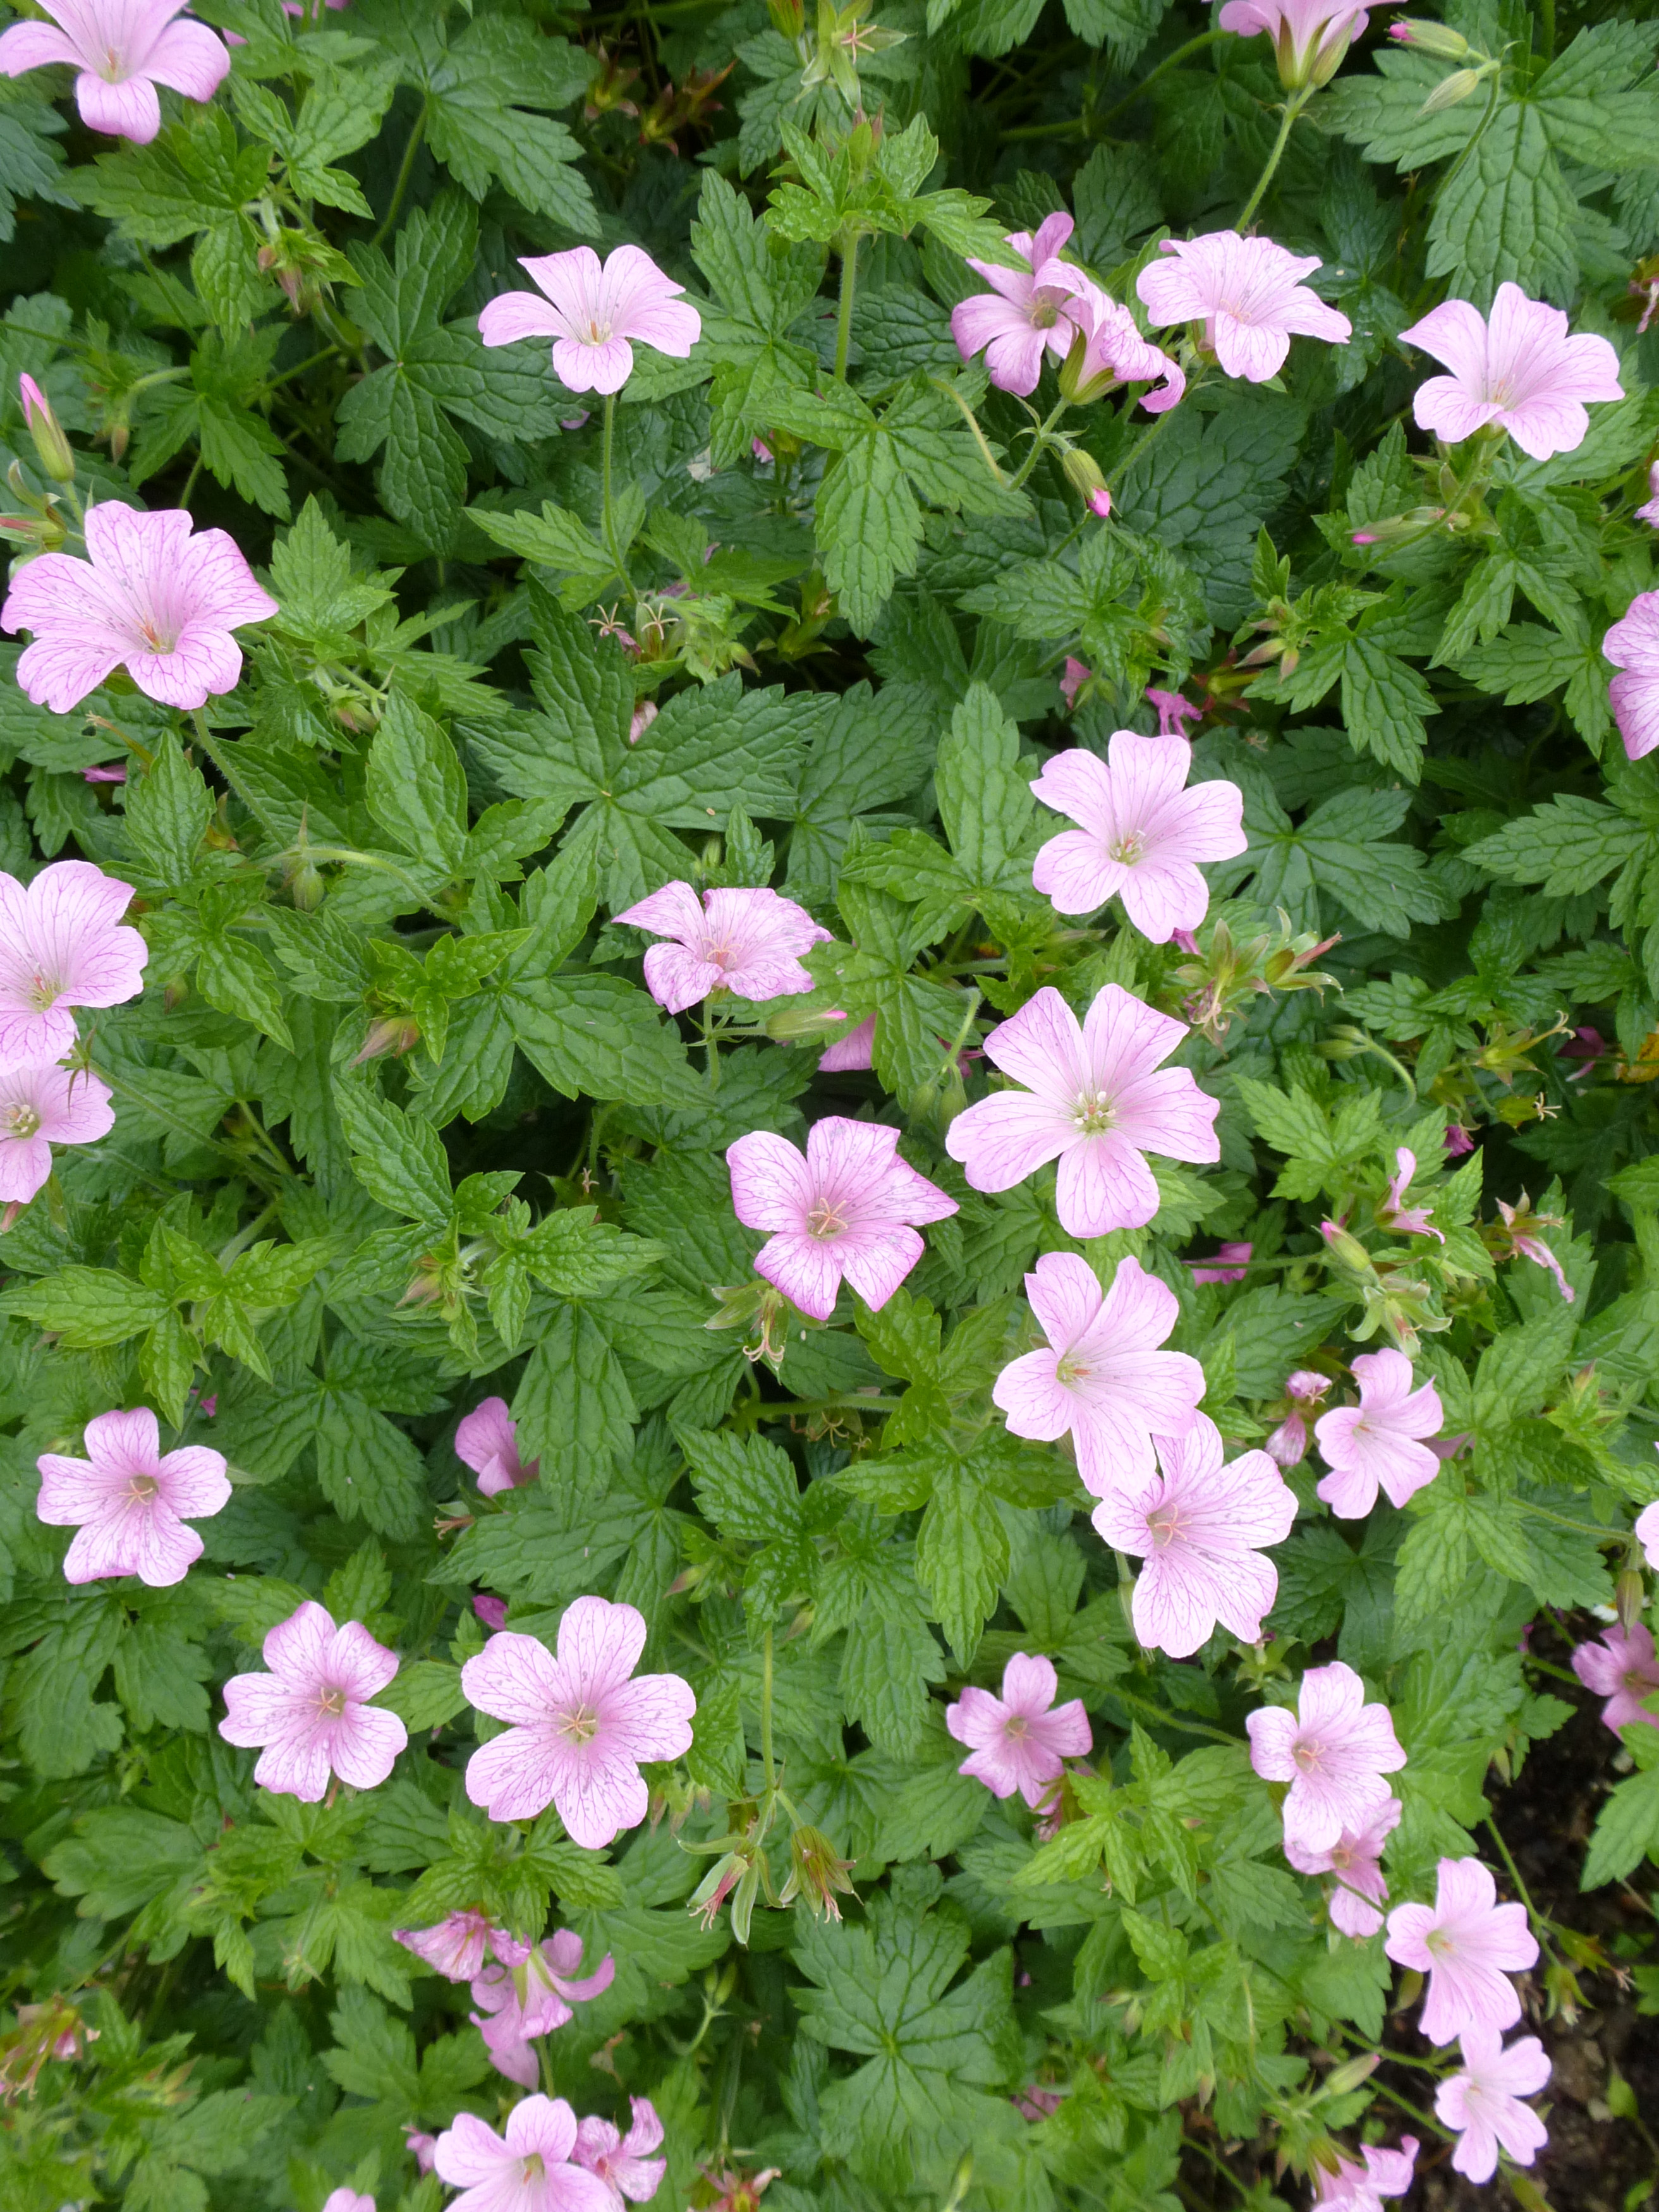 Free Image Of Pretty Pink Flowers On Bush